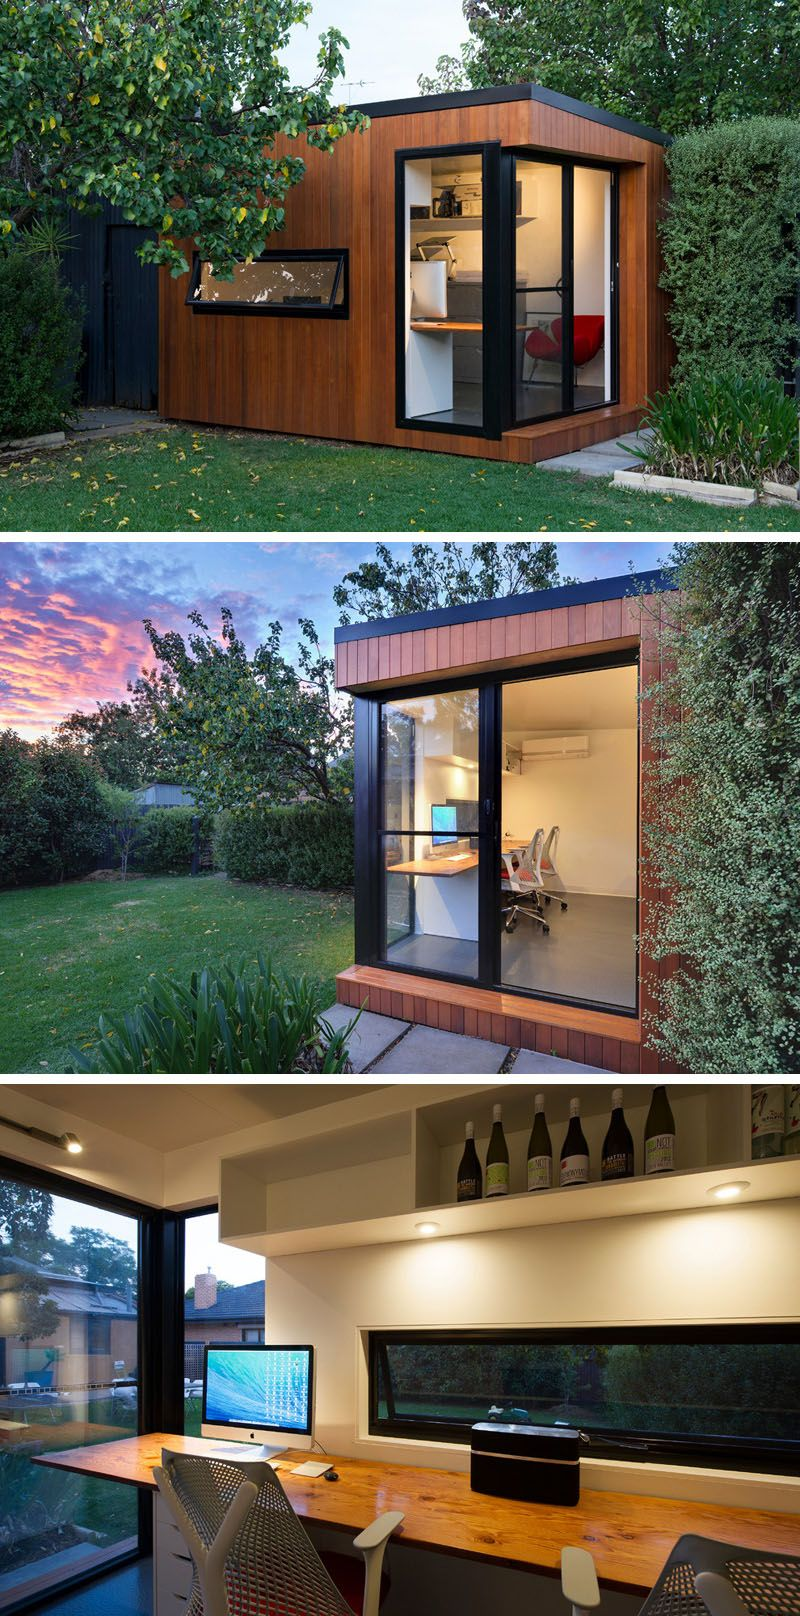 Charmant This Prefab Backyard Home Office Is Covered In Wood And Black Trim  Surrounds The Windows And Sliding Door.